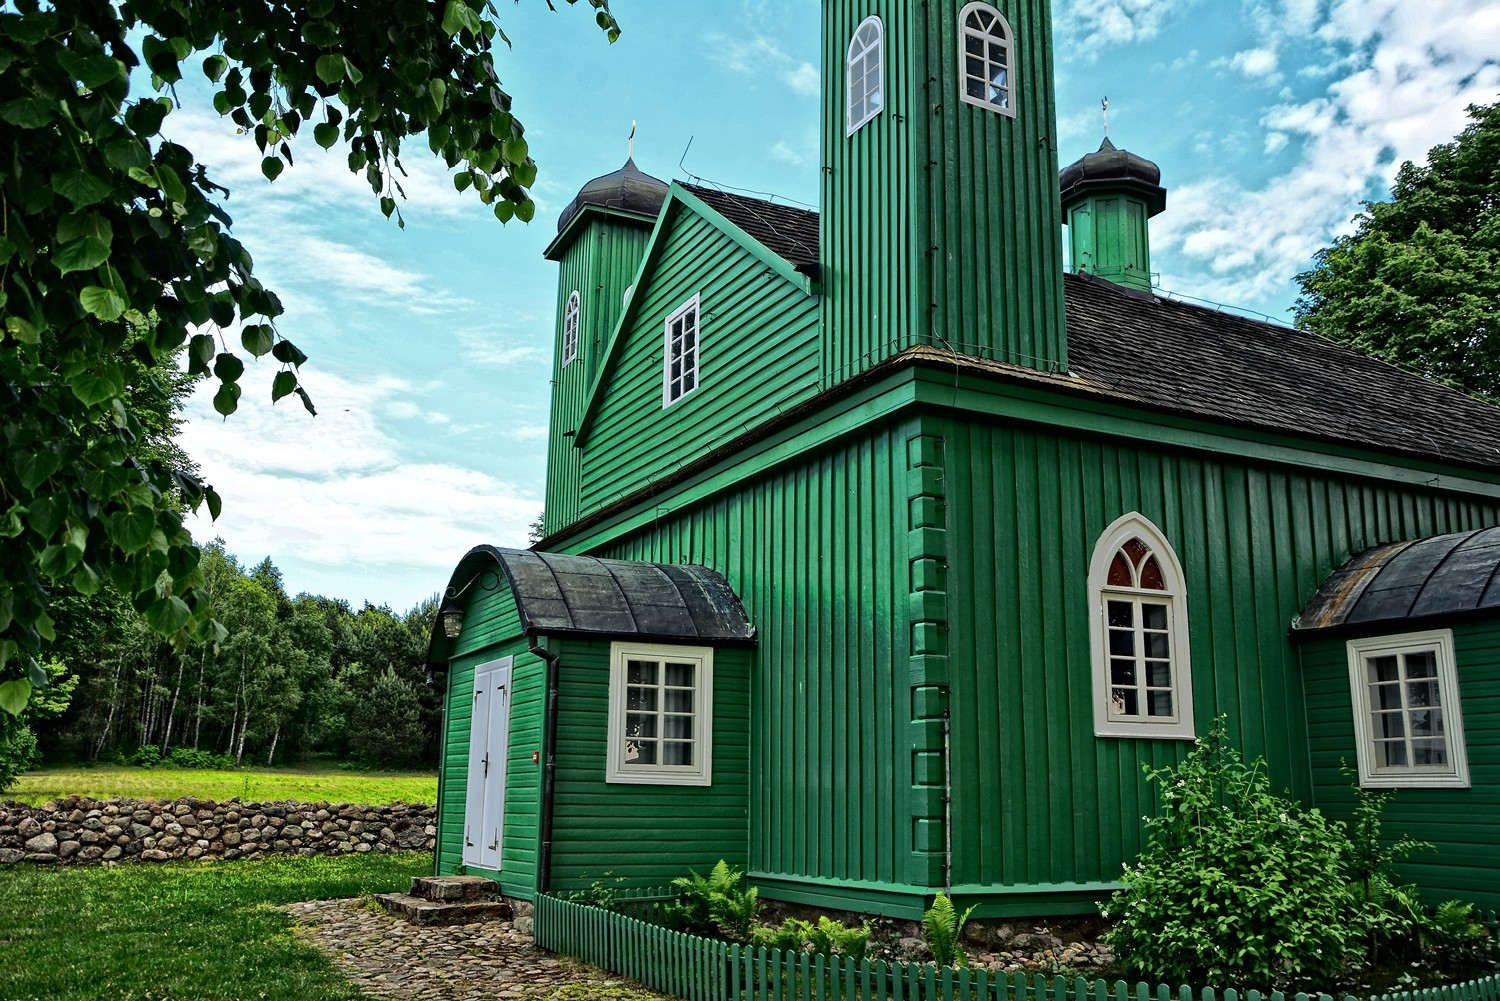 kruszyniany mosque green mosque in poland